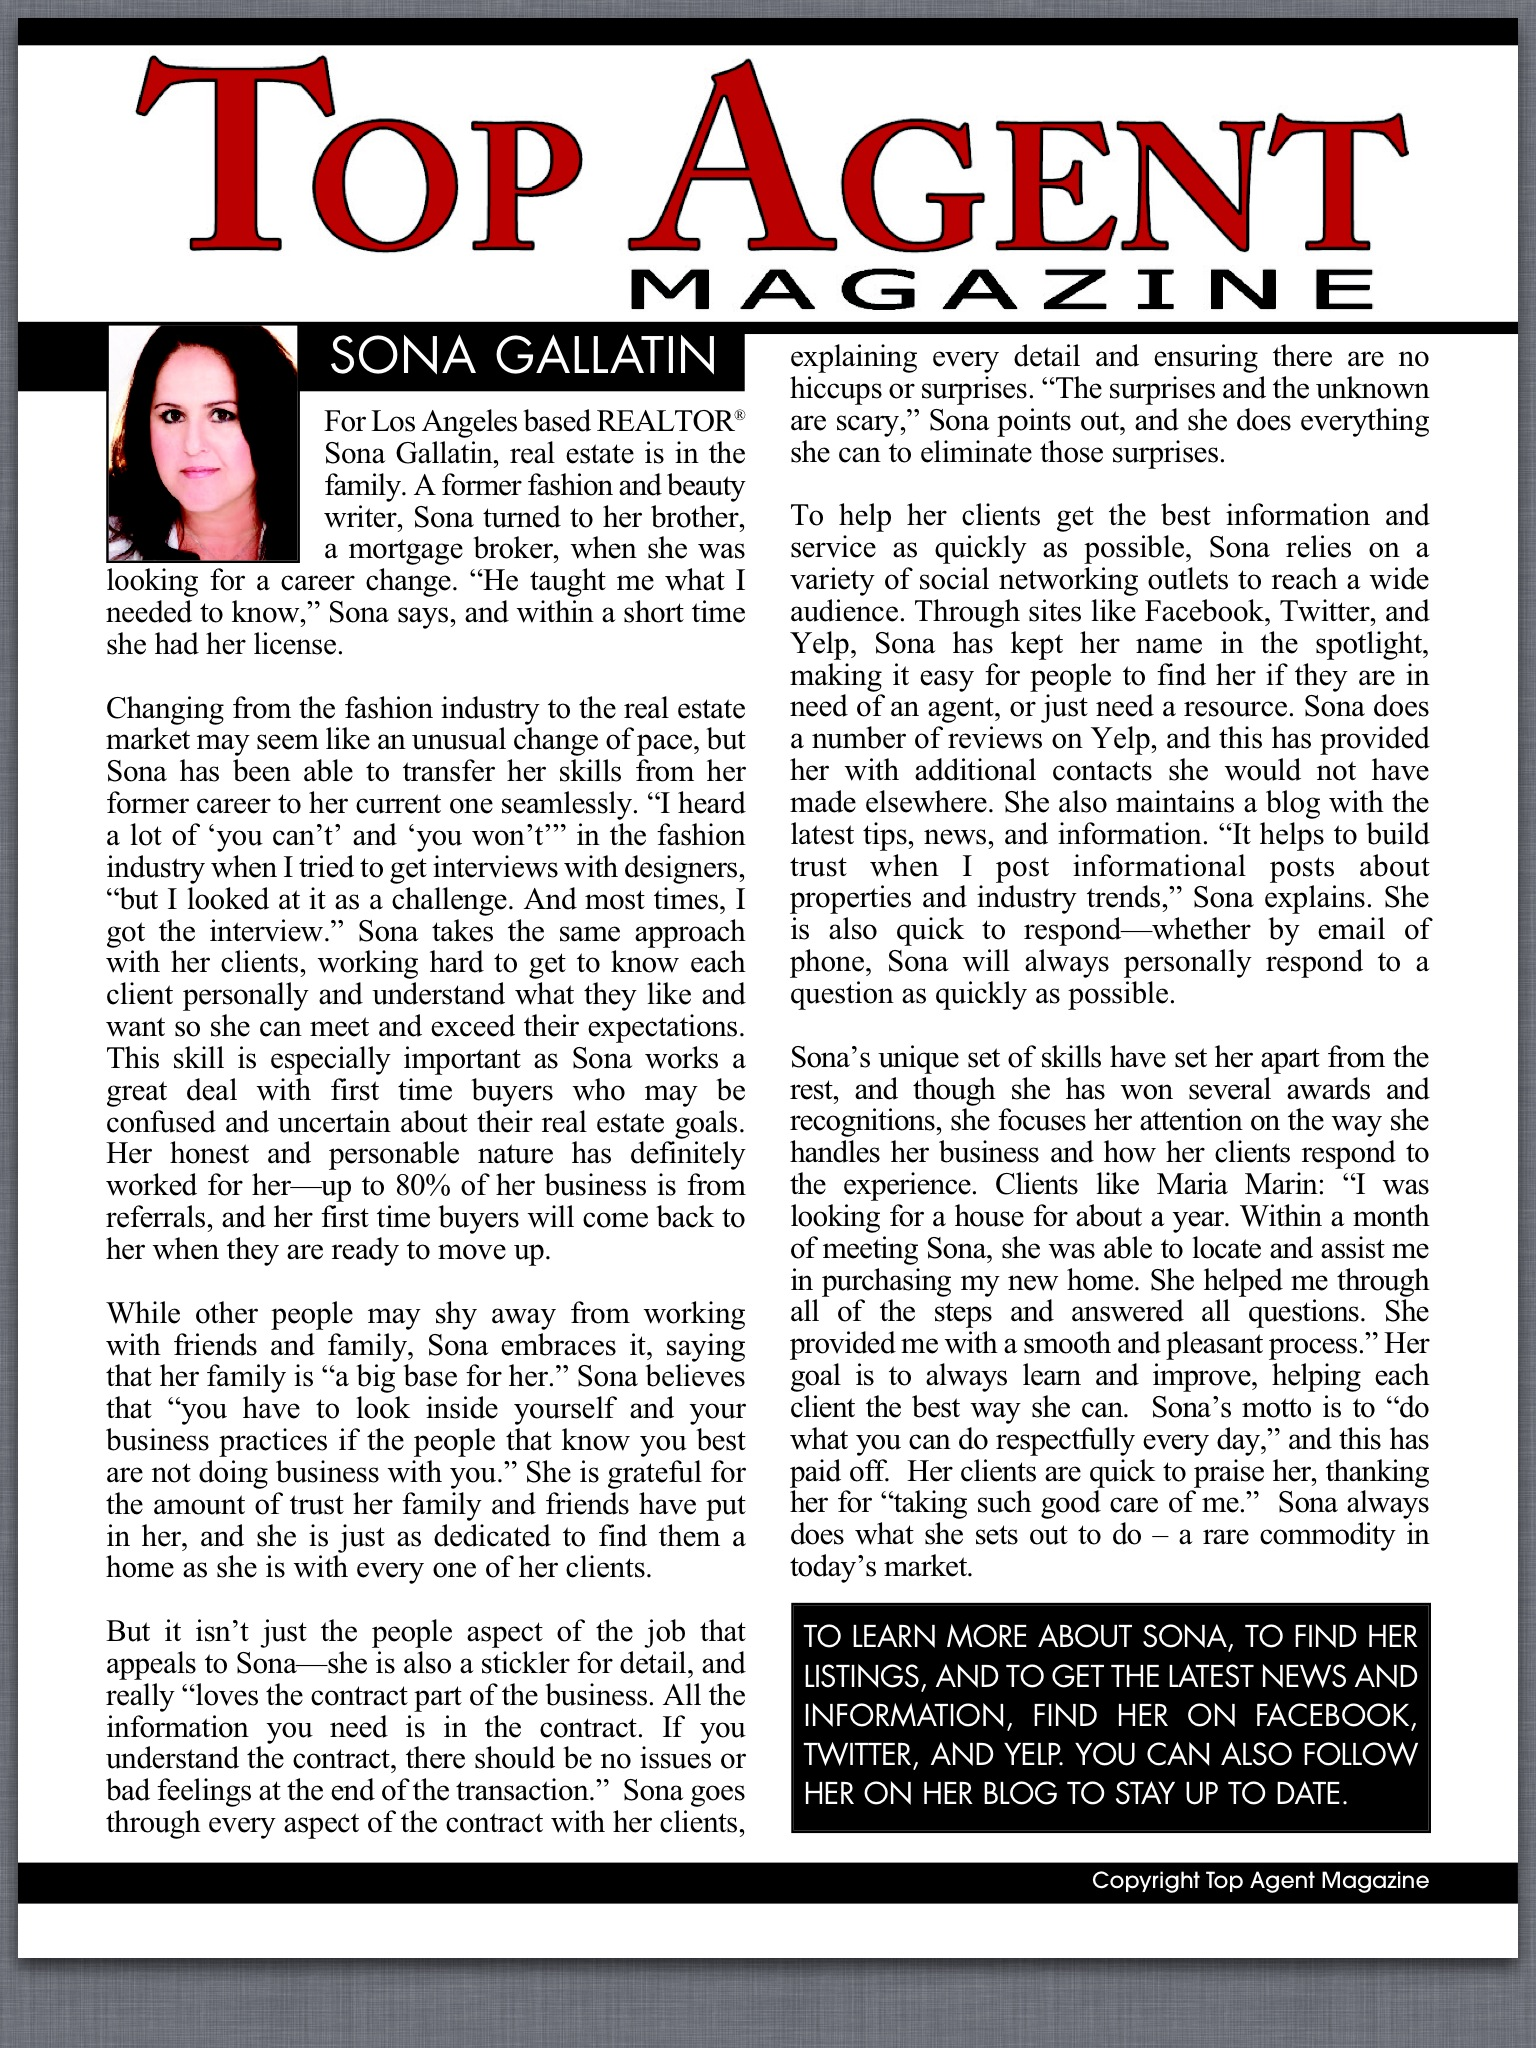 Sona Gallatin's Top Realtor Profile from 2013